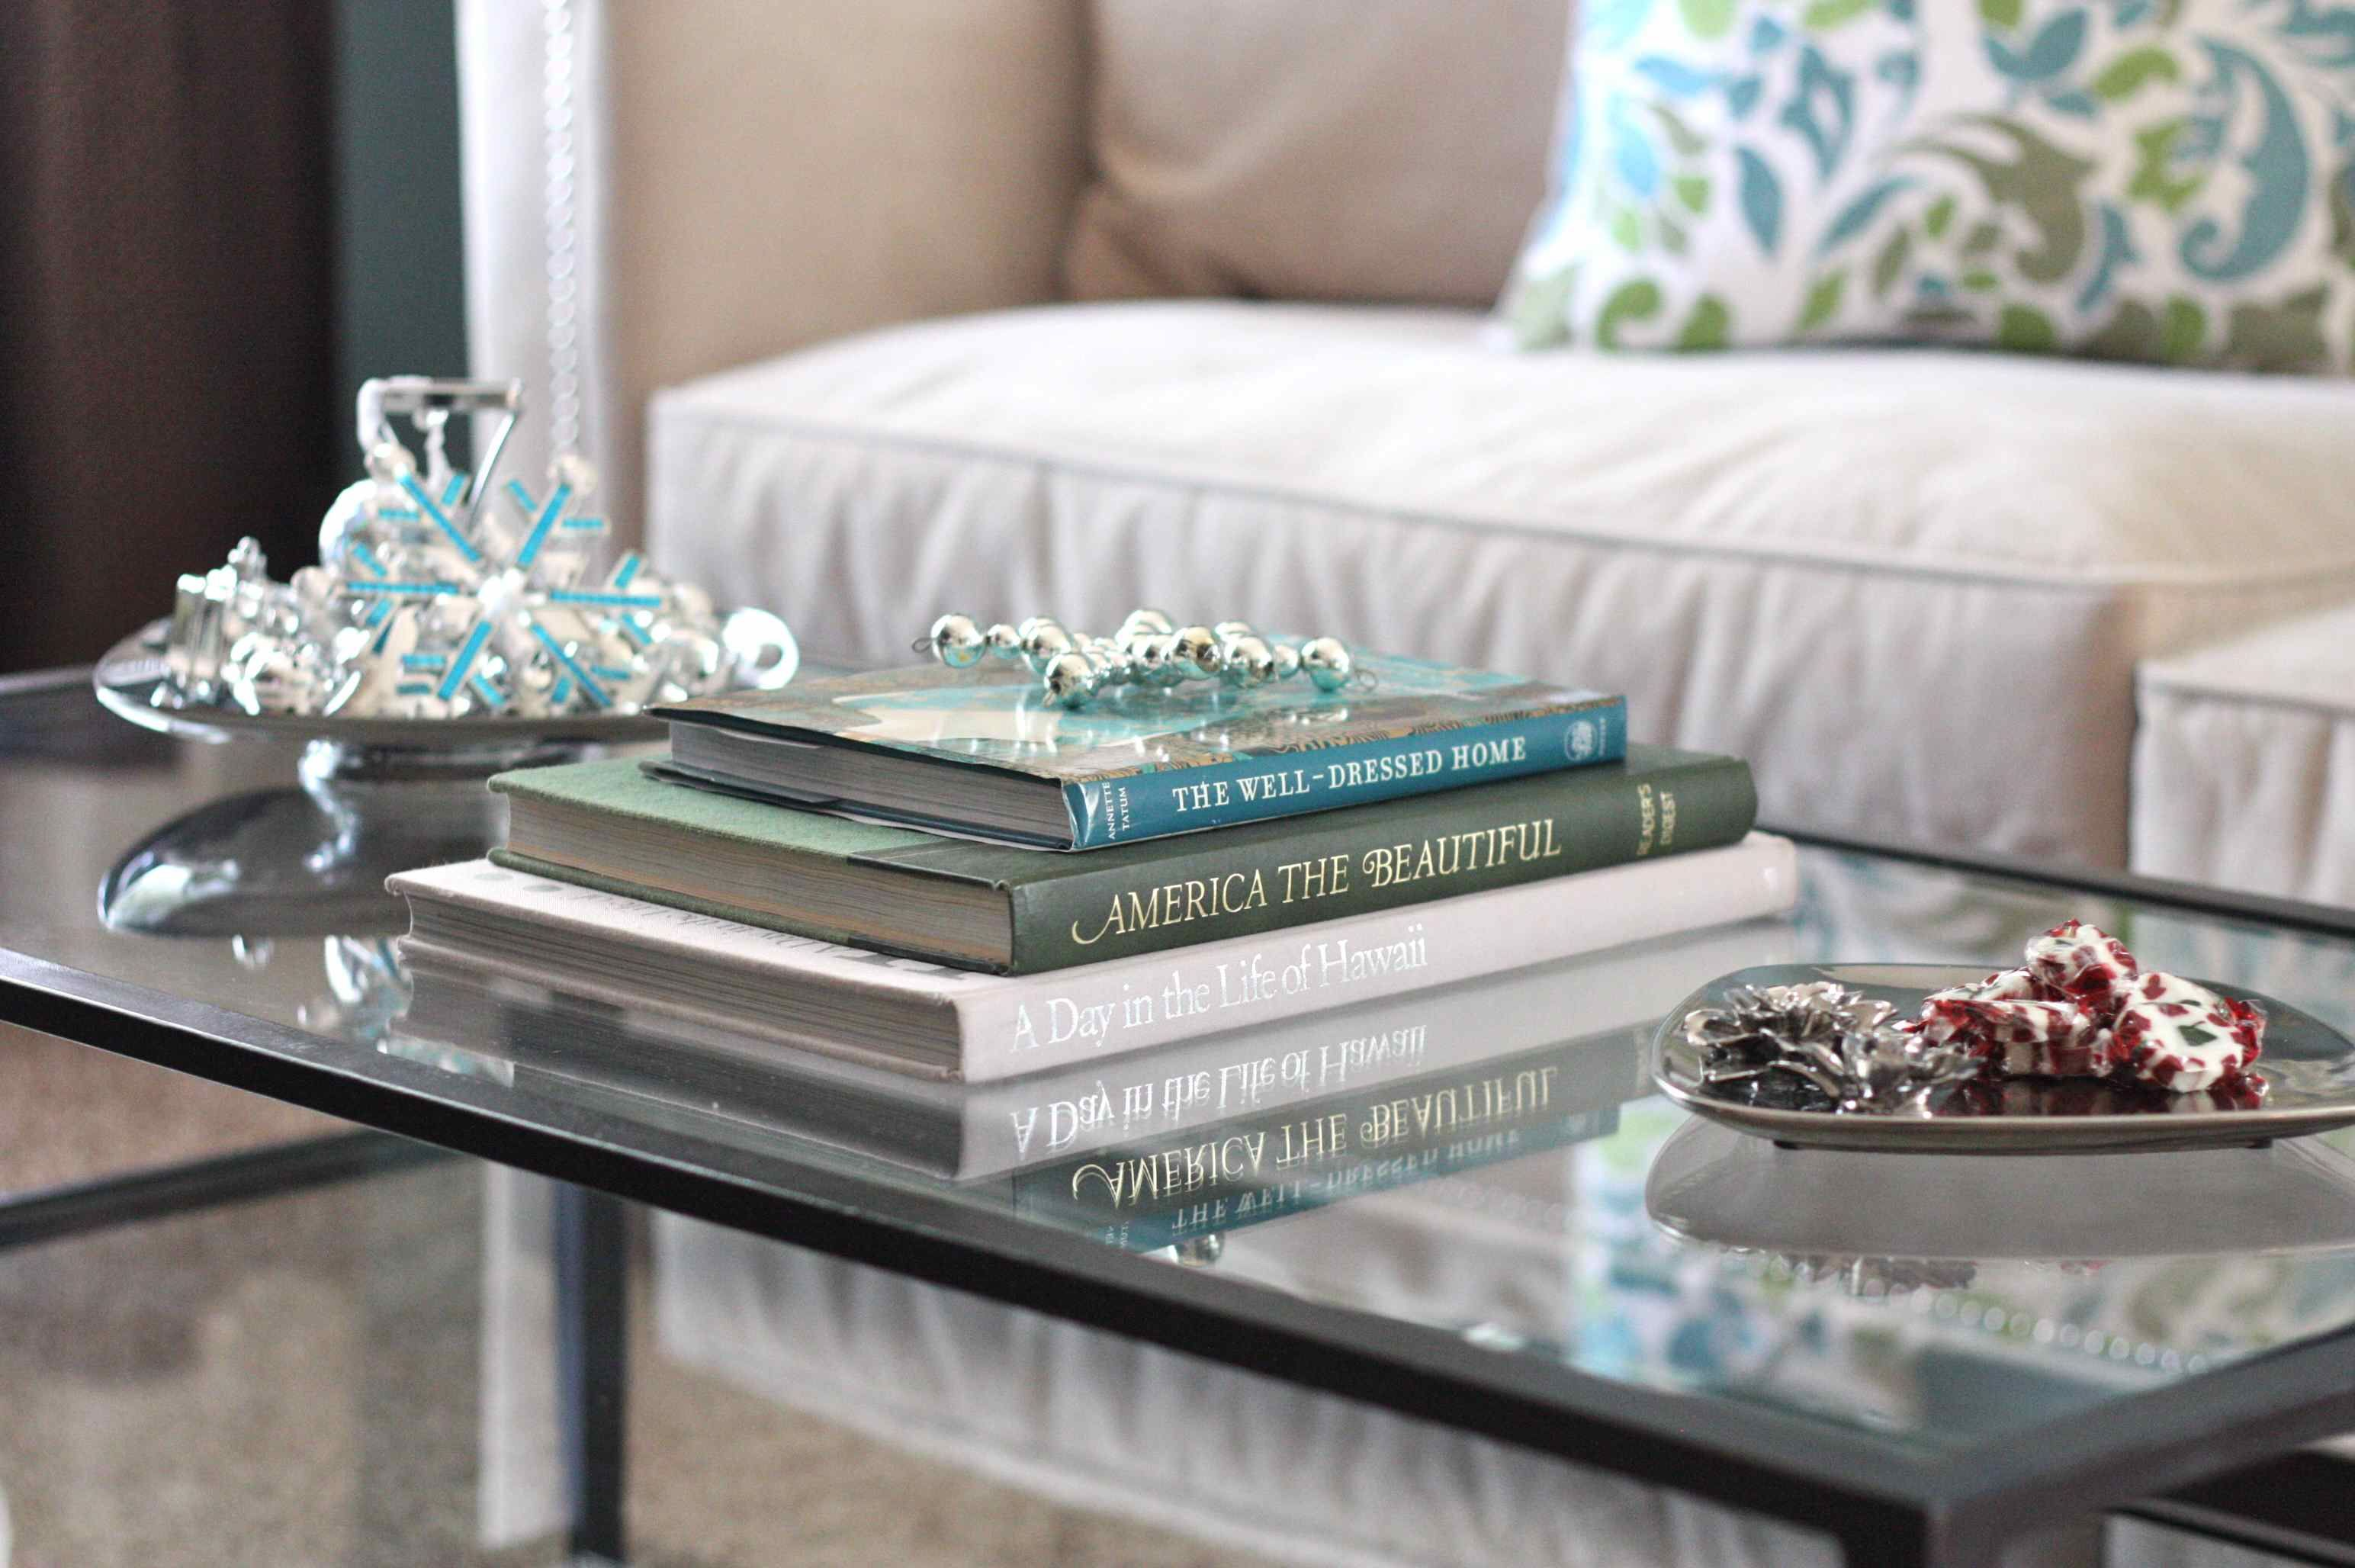 Silver Candy Dishes And Coffee Table Books From Goodwill Thrift